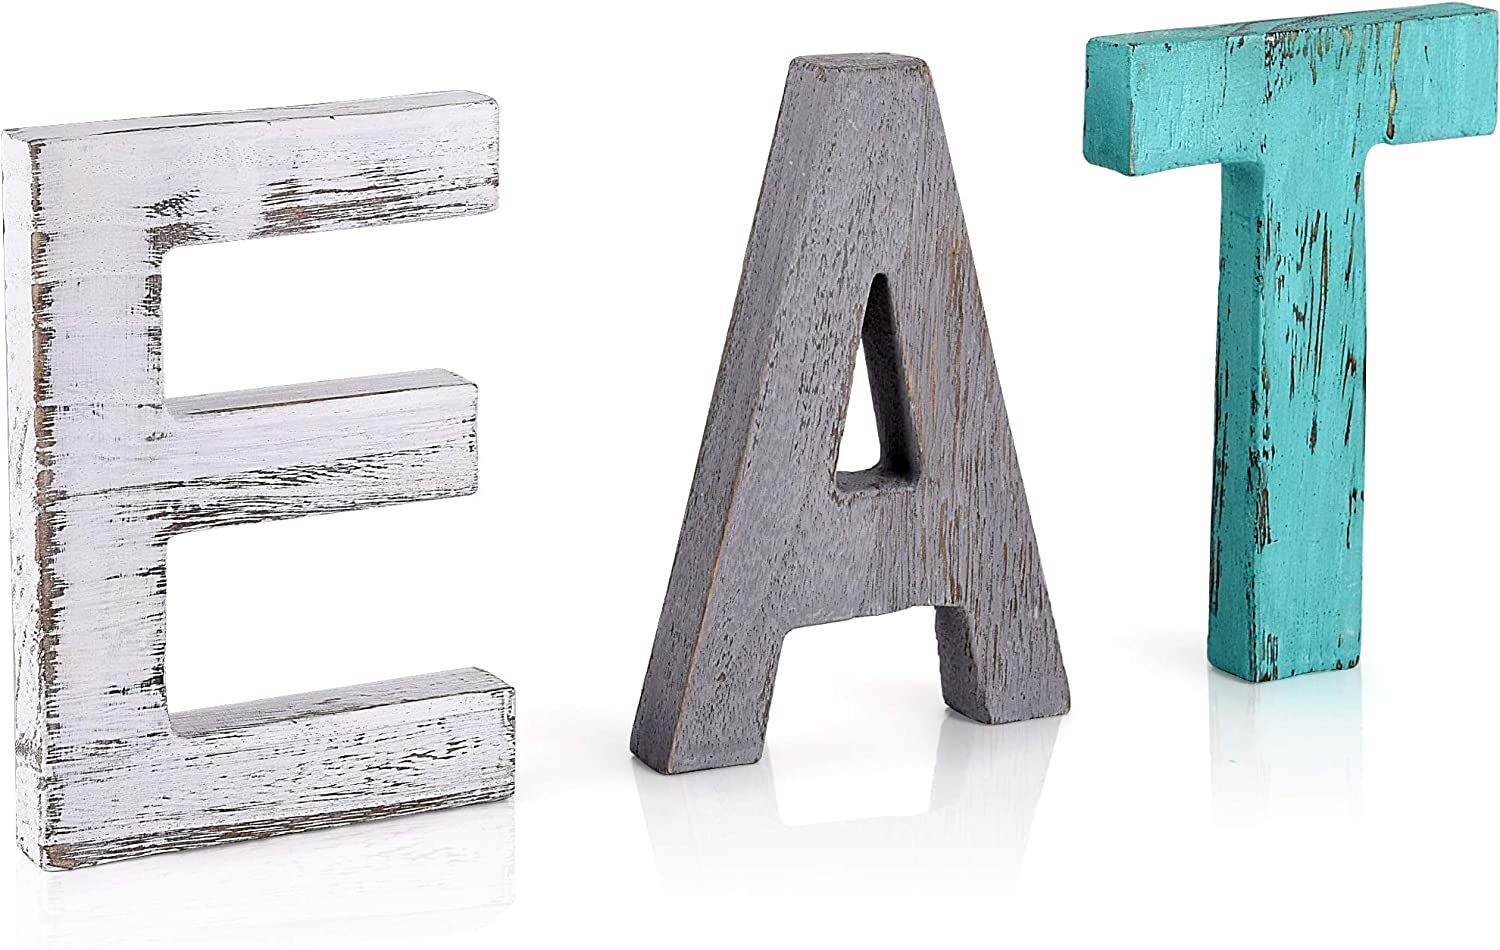 EAT Sign Farmhouse Kitchen Decor - Rustic Home Decor Signs - Freestanding Wood Multicolor Cutout Art Decorations For Kitchen Counter, Dining Room, Table, or Wall